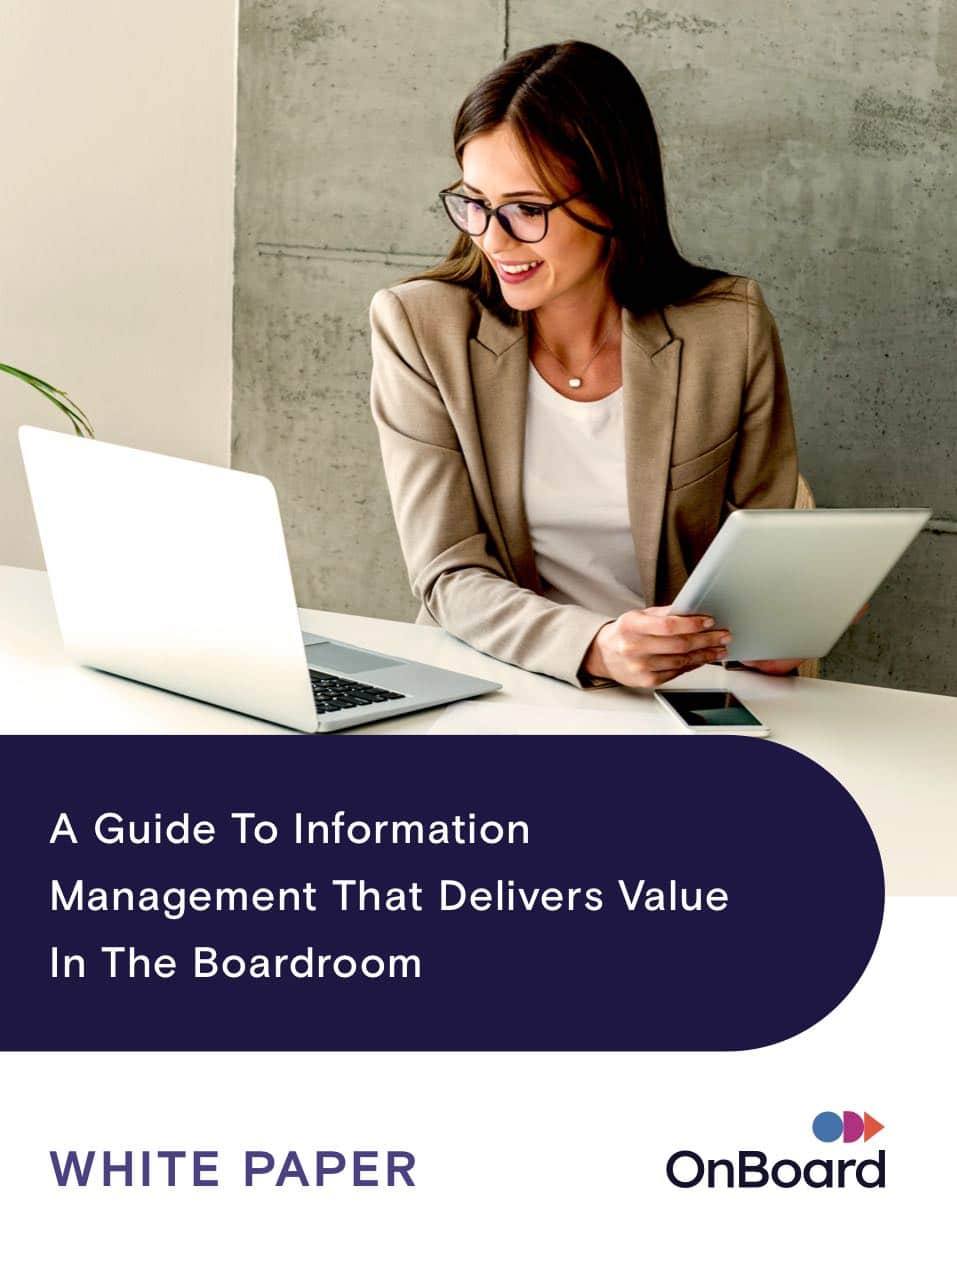 A Guide To Information Management That Delivers Value